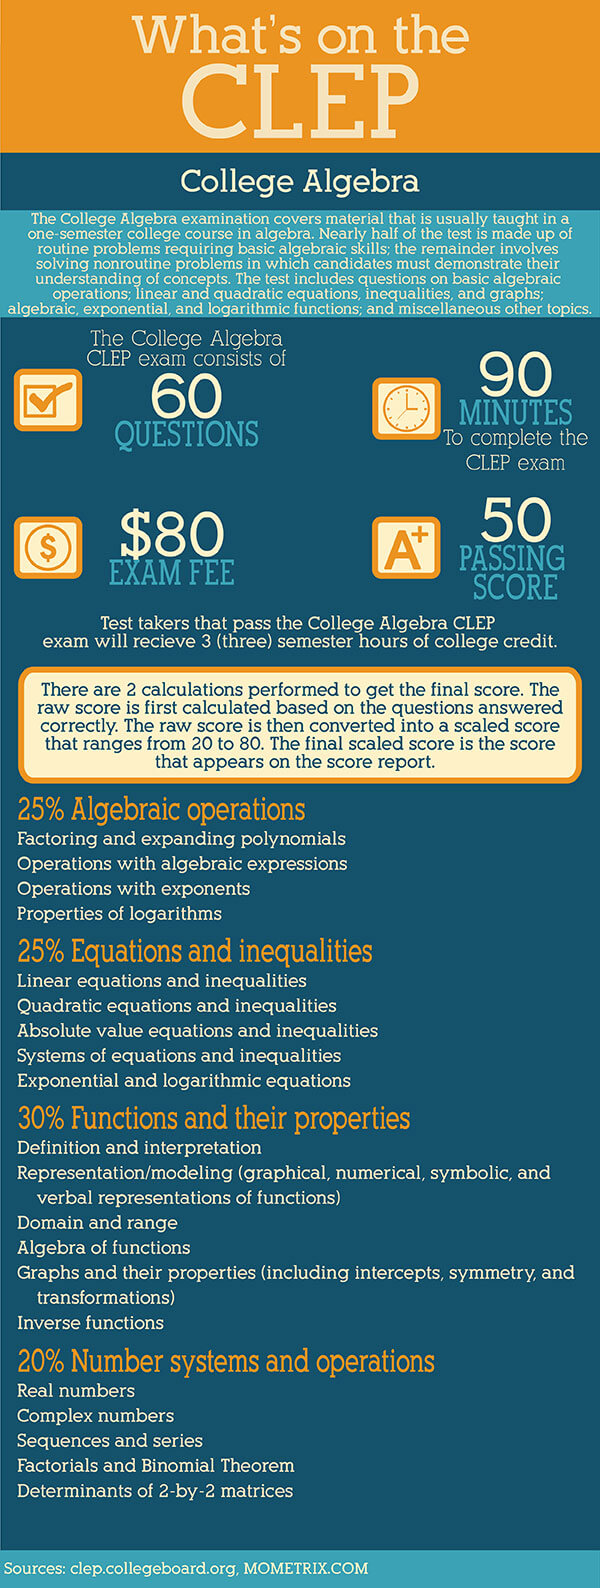 Infographic: What's on the CLEP College Algebra